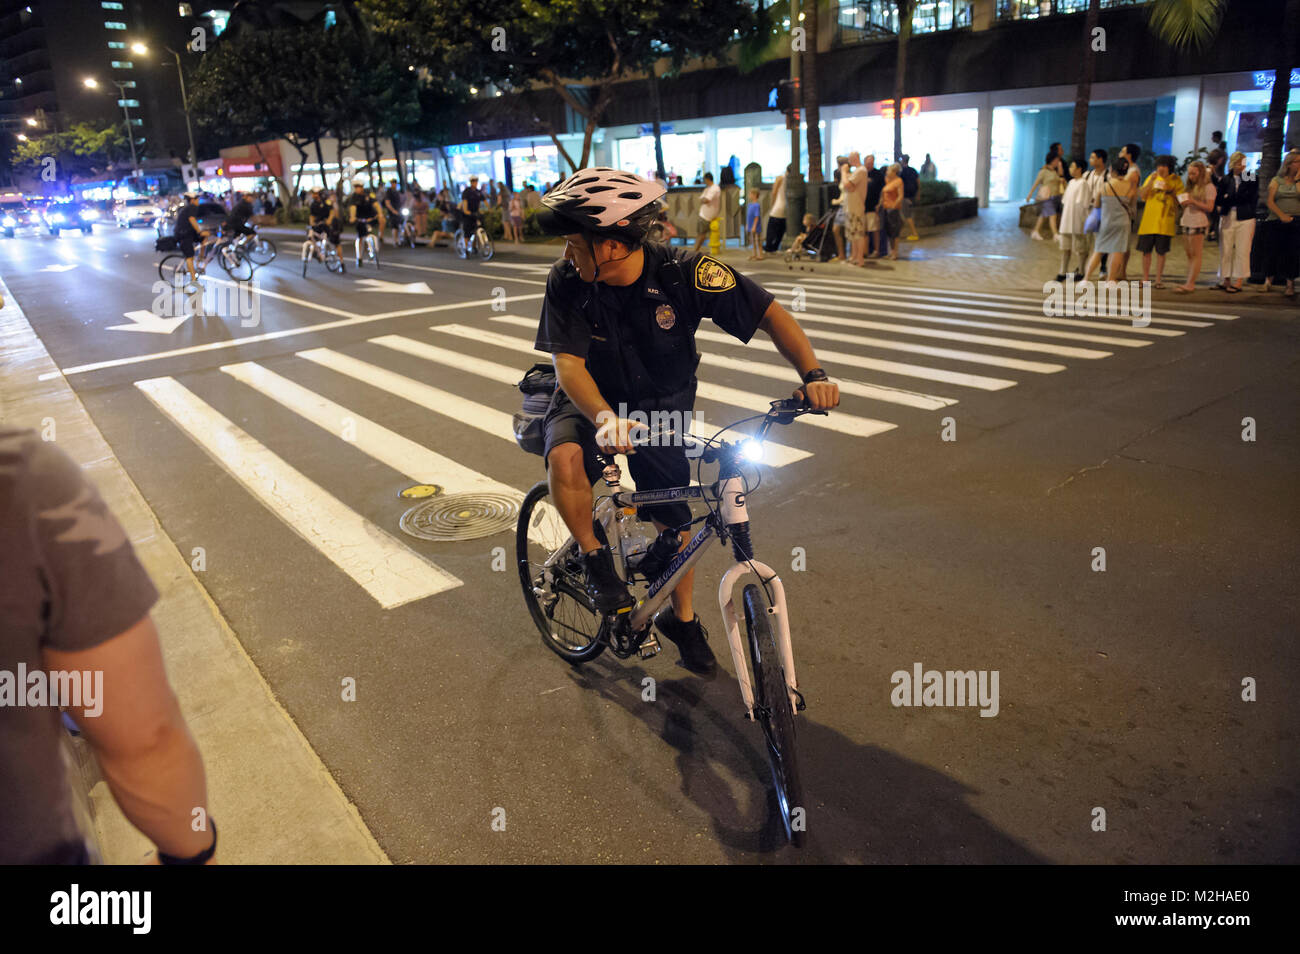 Policeman on bicycle bike patrol, Waikiki, Honolulu, Hawaii Stock Photo